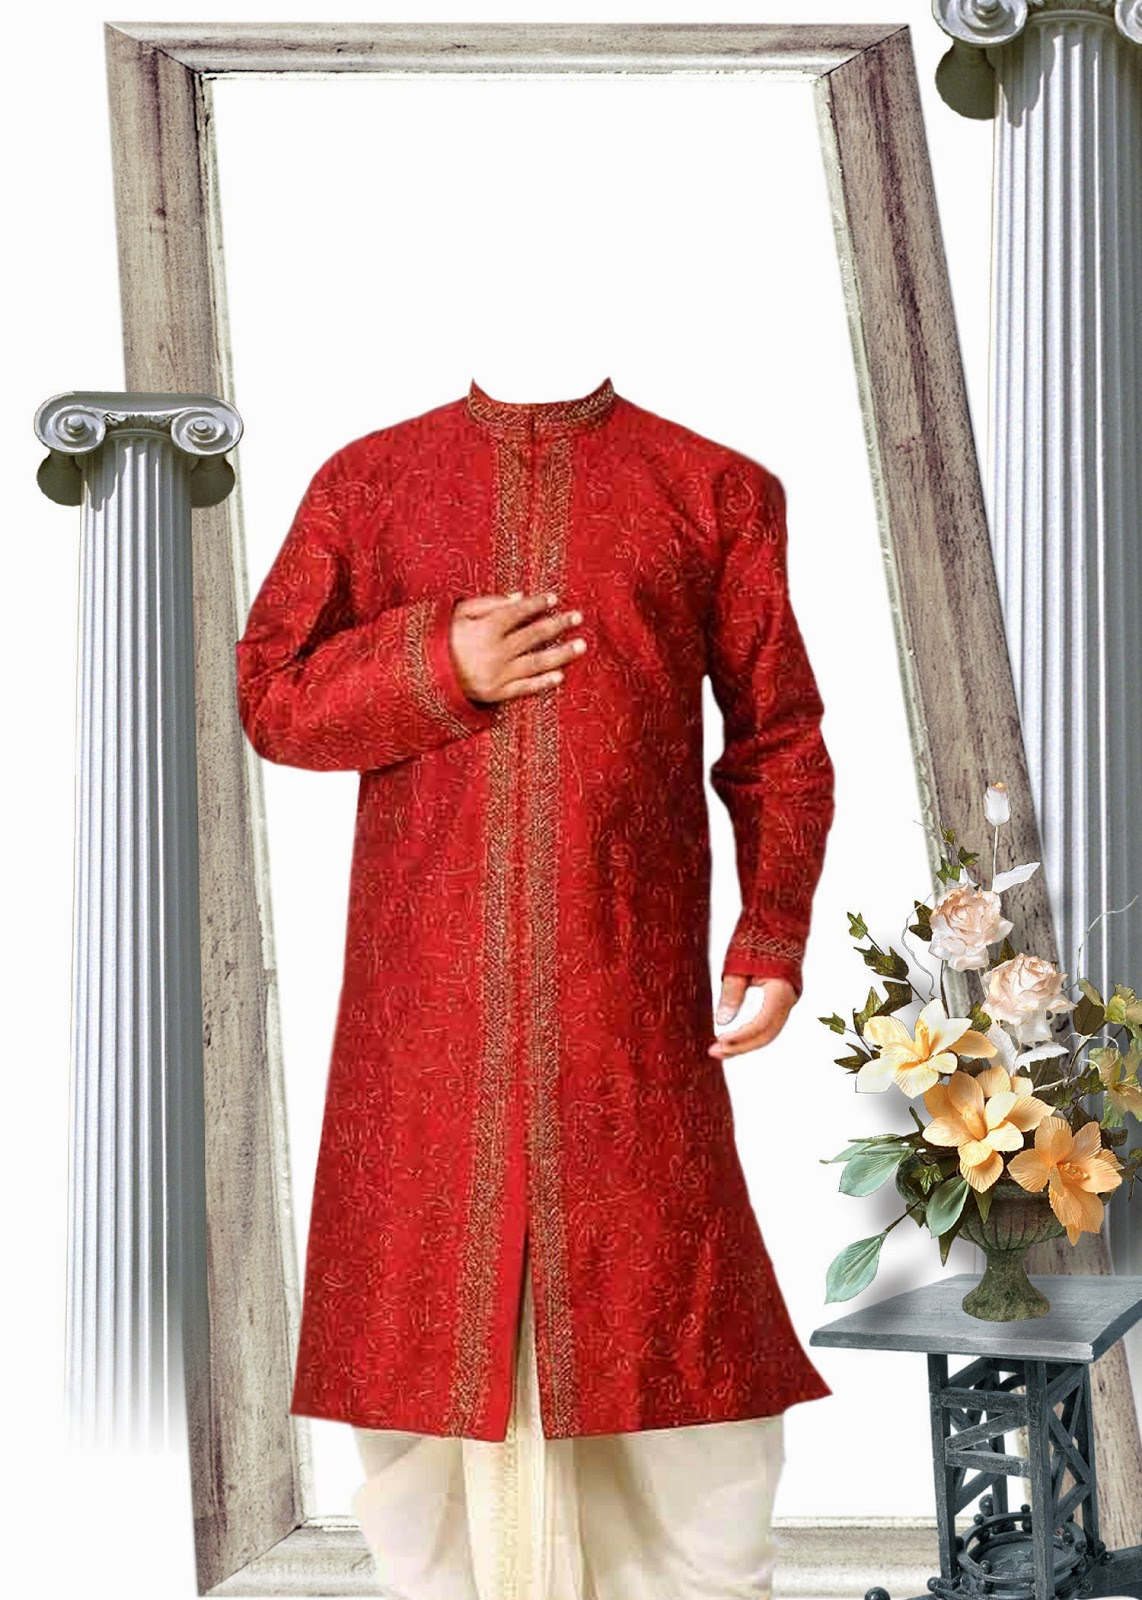 Psd-Sherwani-Dress